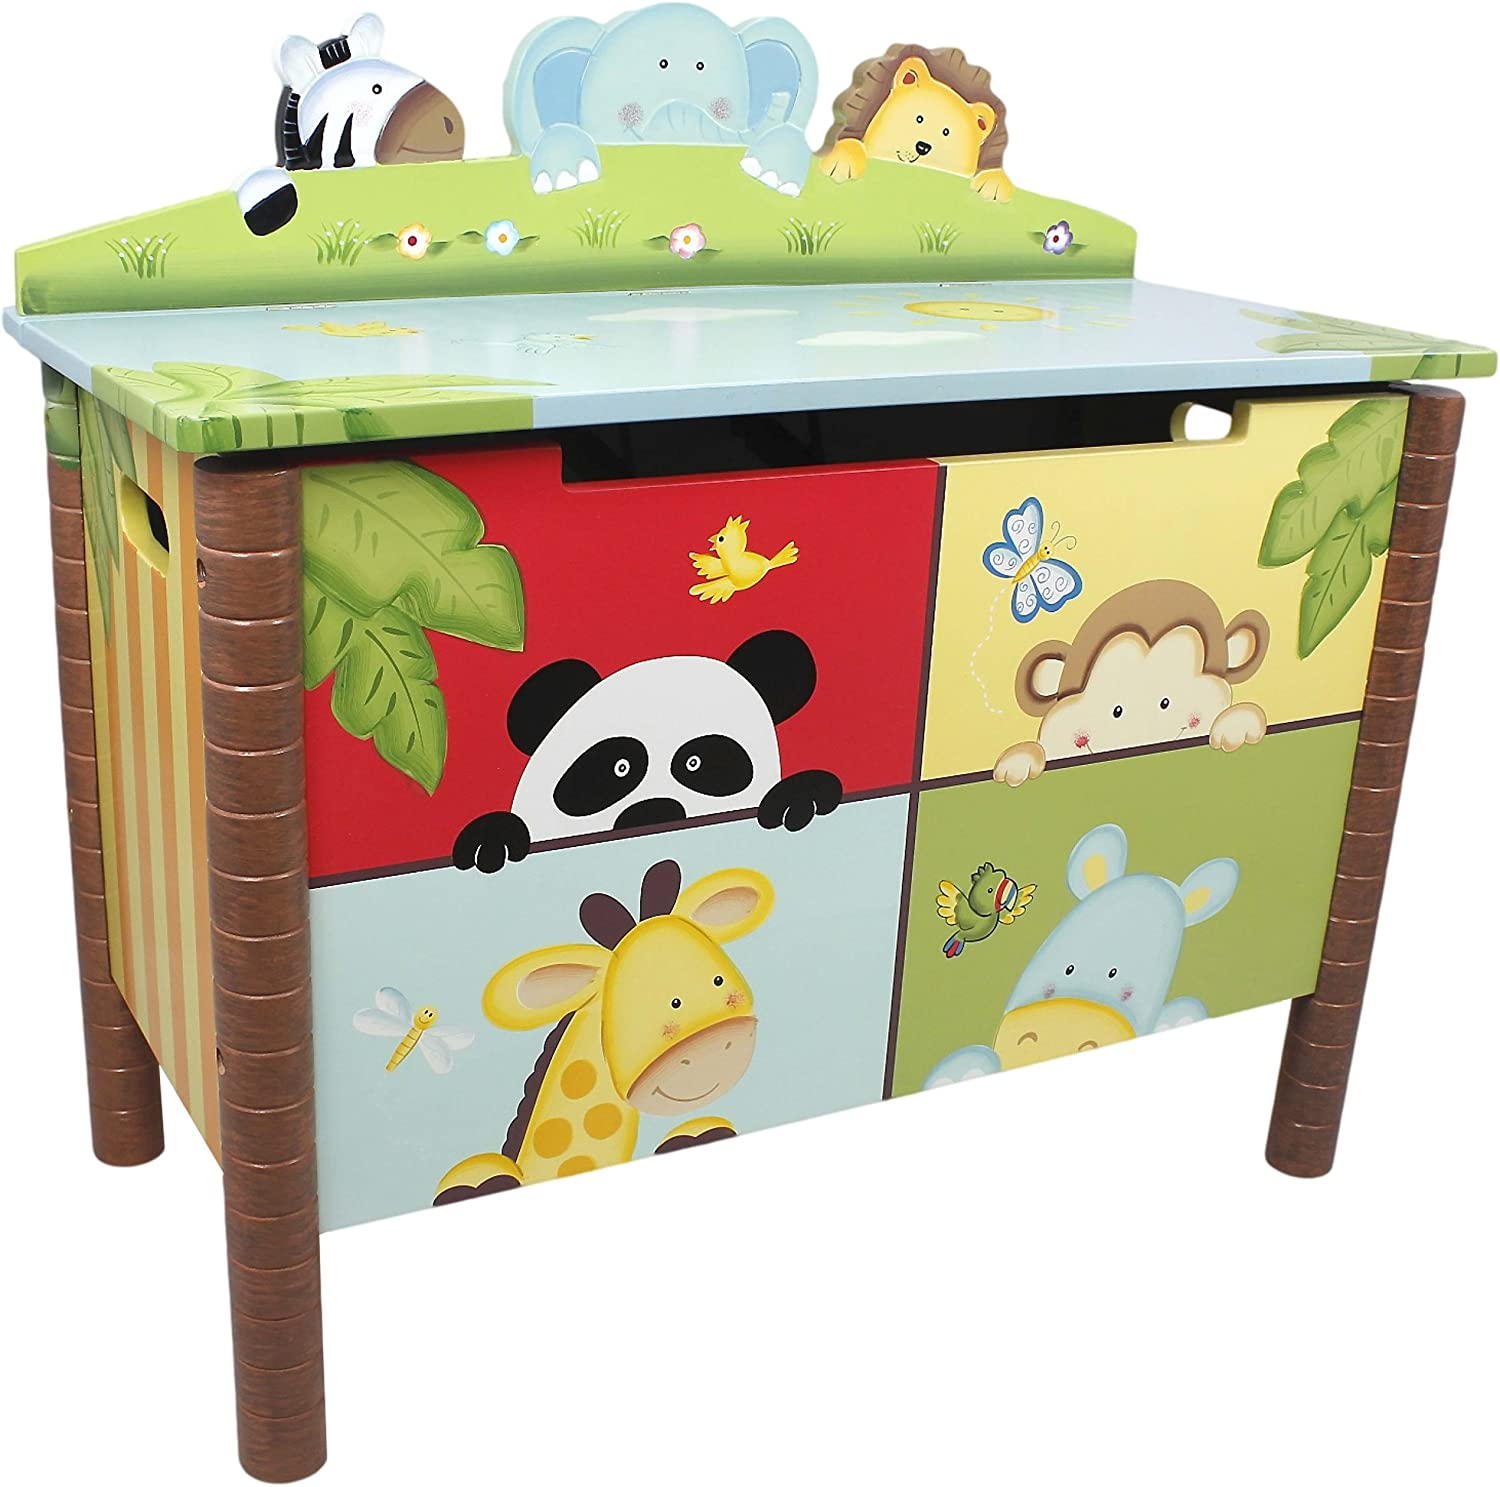 Fantasy Fields - Sunny Safari Animals Thematic Kids Wooden Toy Chest with Safety Hinges   Imagination Inspiring Hand Crafted & Hand Painted Details   Non-Toxic, Lead Free Water-based Paint